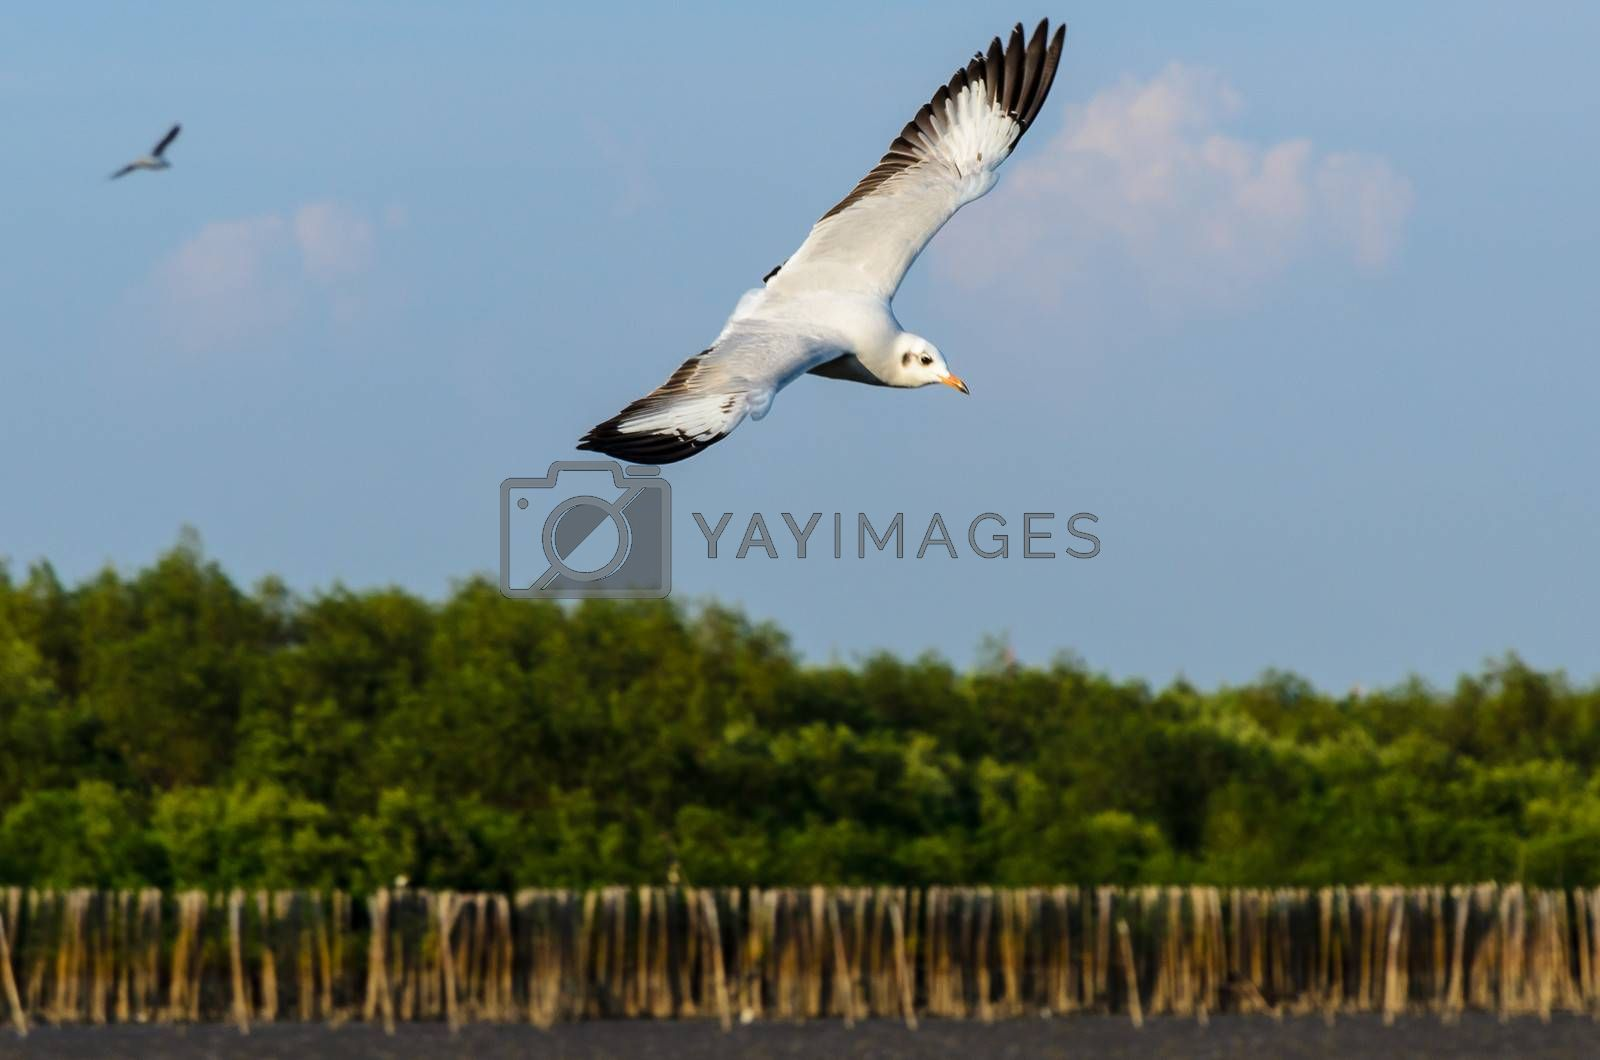 Royalty free image of Brown-headed gull in Mangrove forest with blue sky by finallast